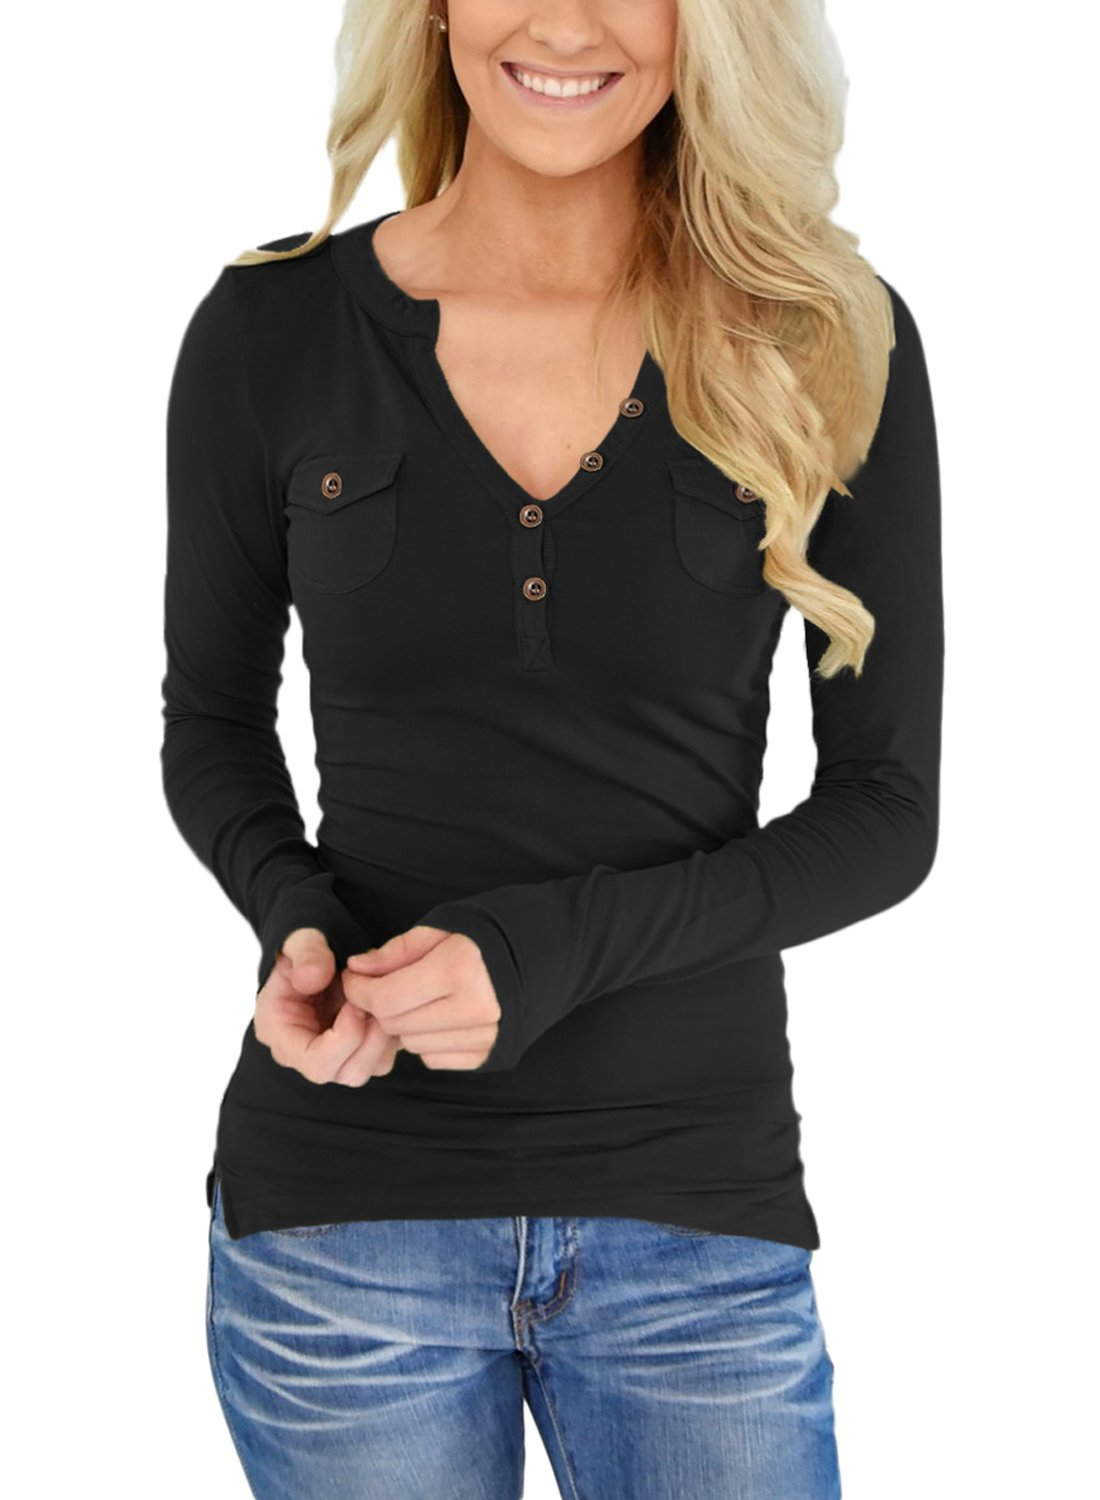 ZKESS Womens Henley Blouse Long Sleeve V Neckline Button Pocket Tops Shirts Black M